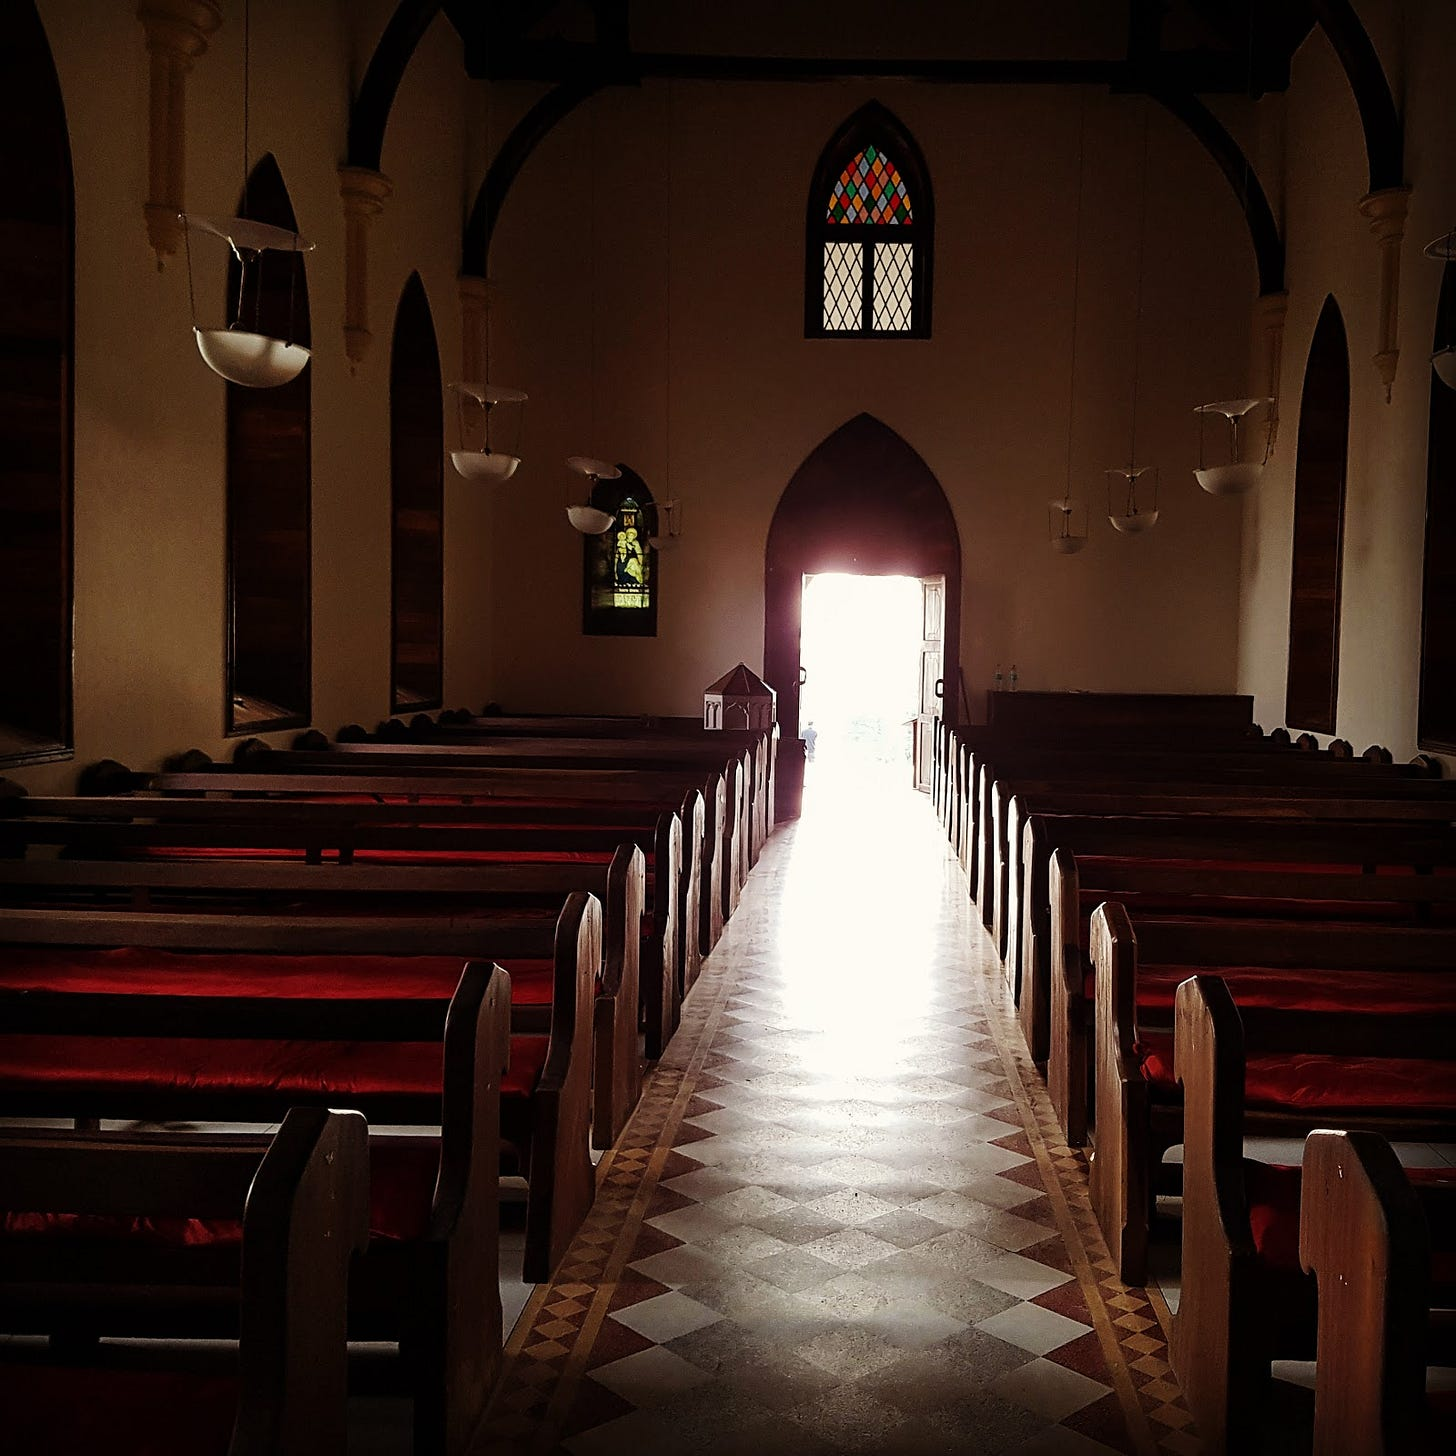 Visit St. Paul's Church, Landour on your trip to Mussoorie or India